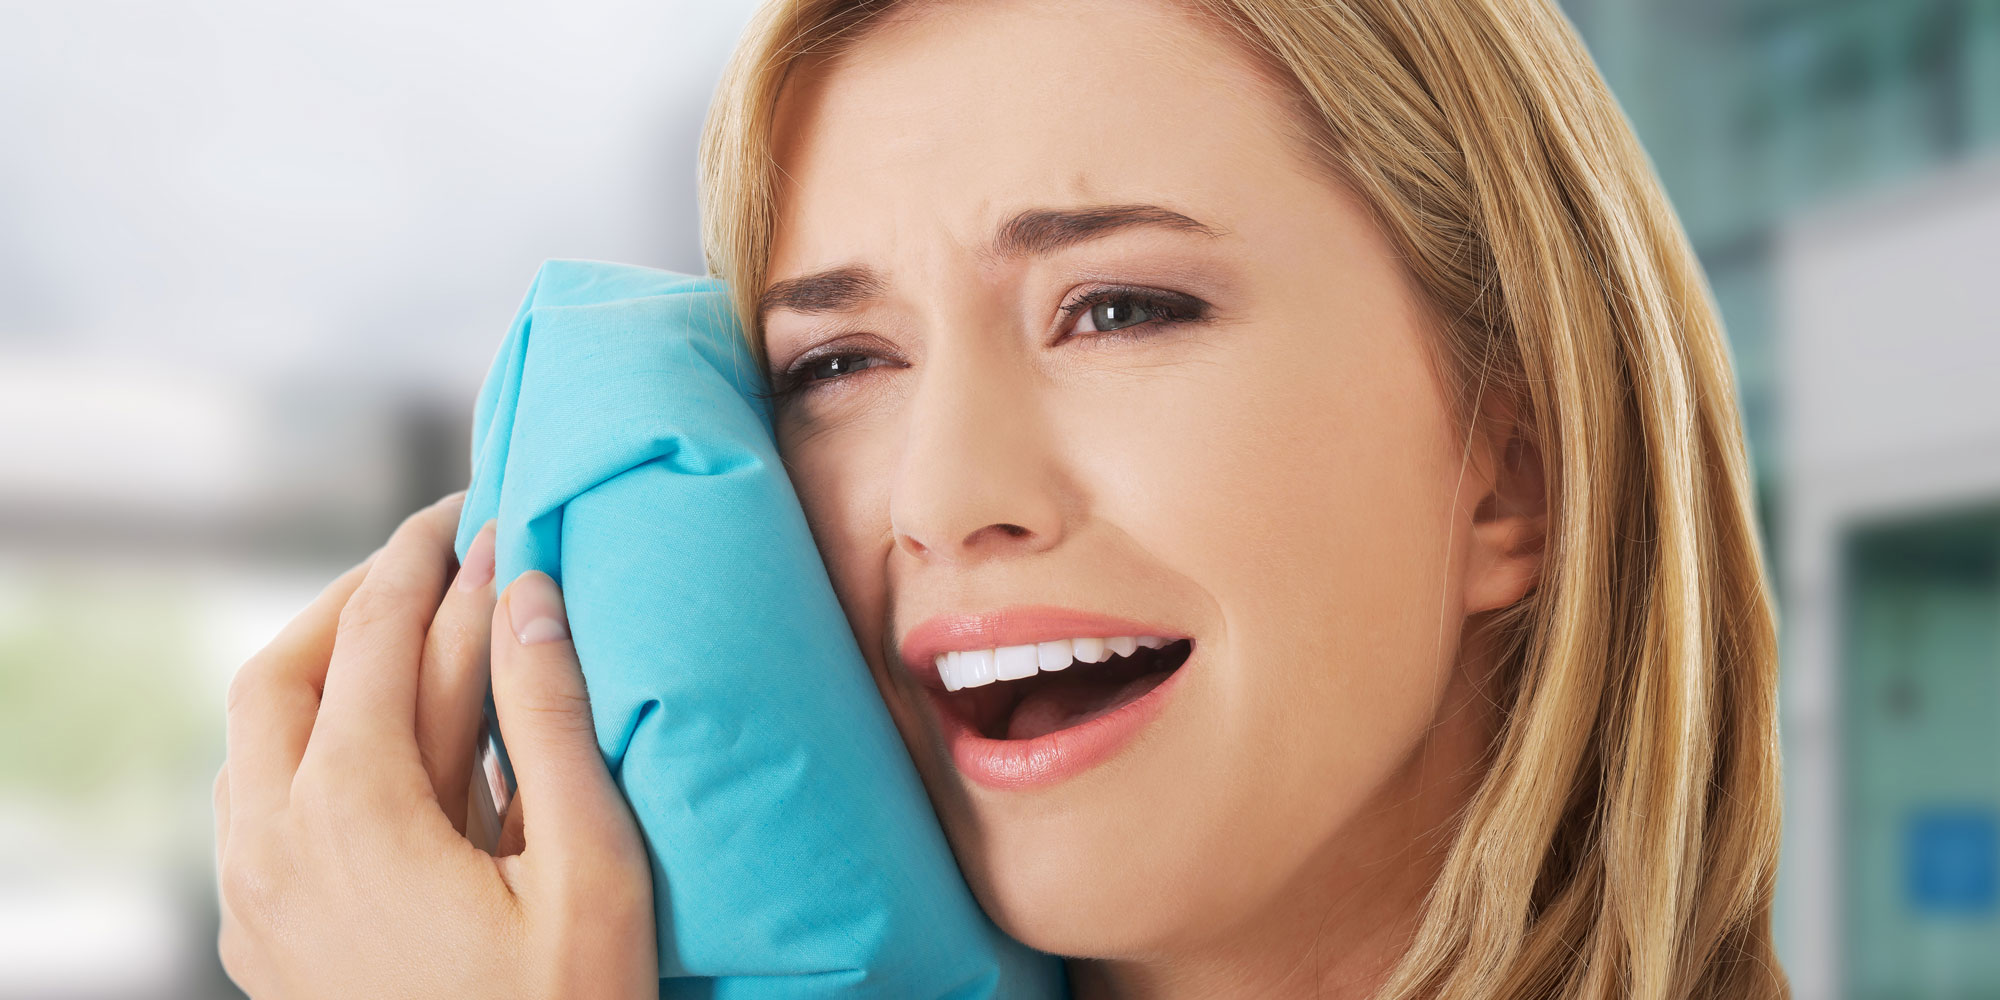 Root Canal Treatment in Bayside, NY